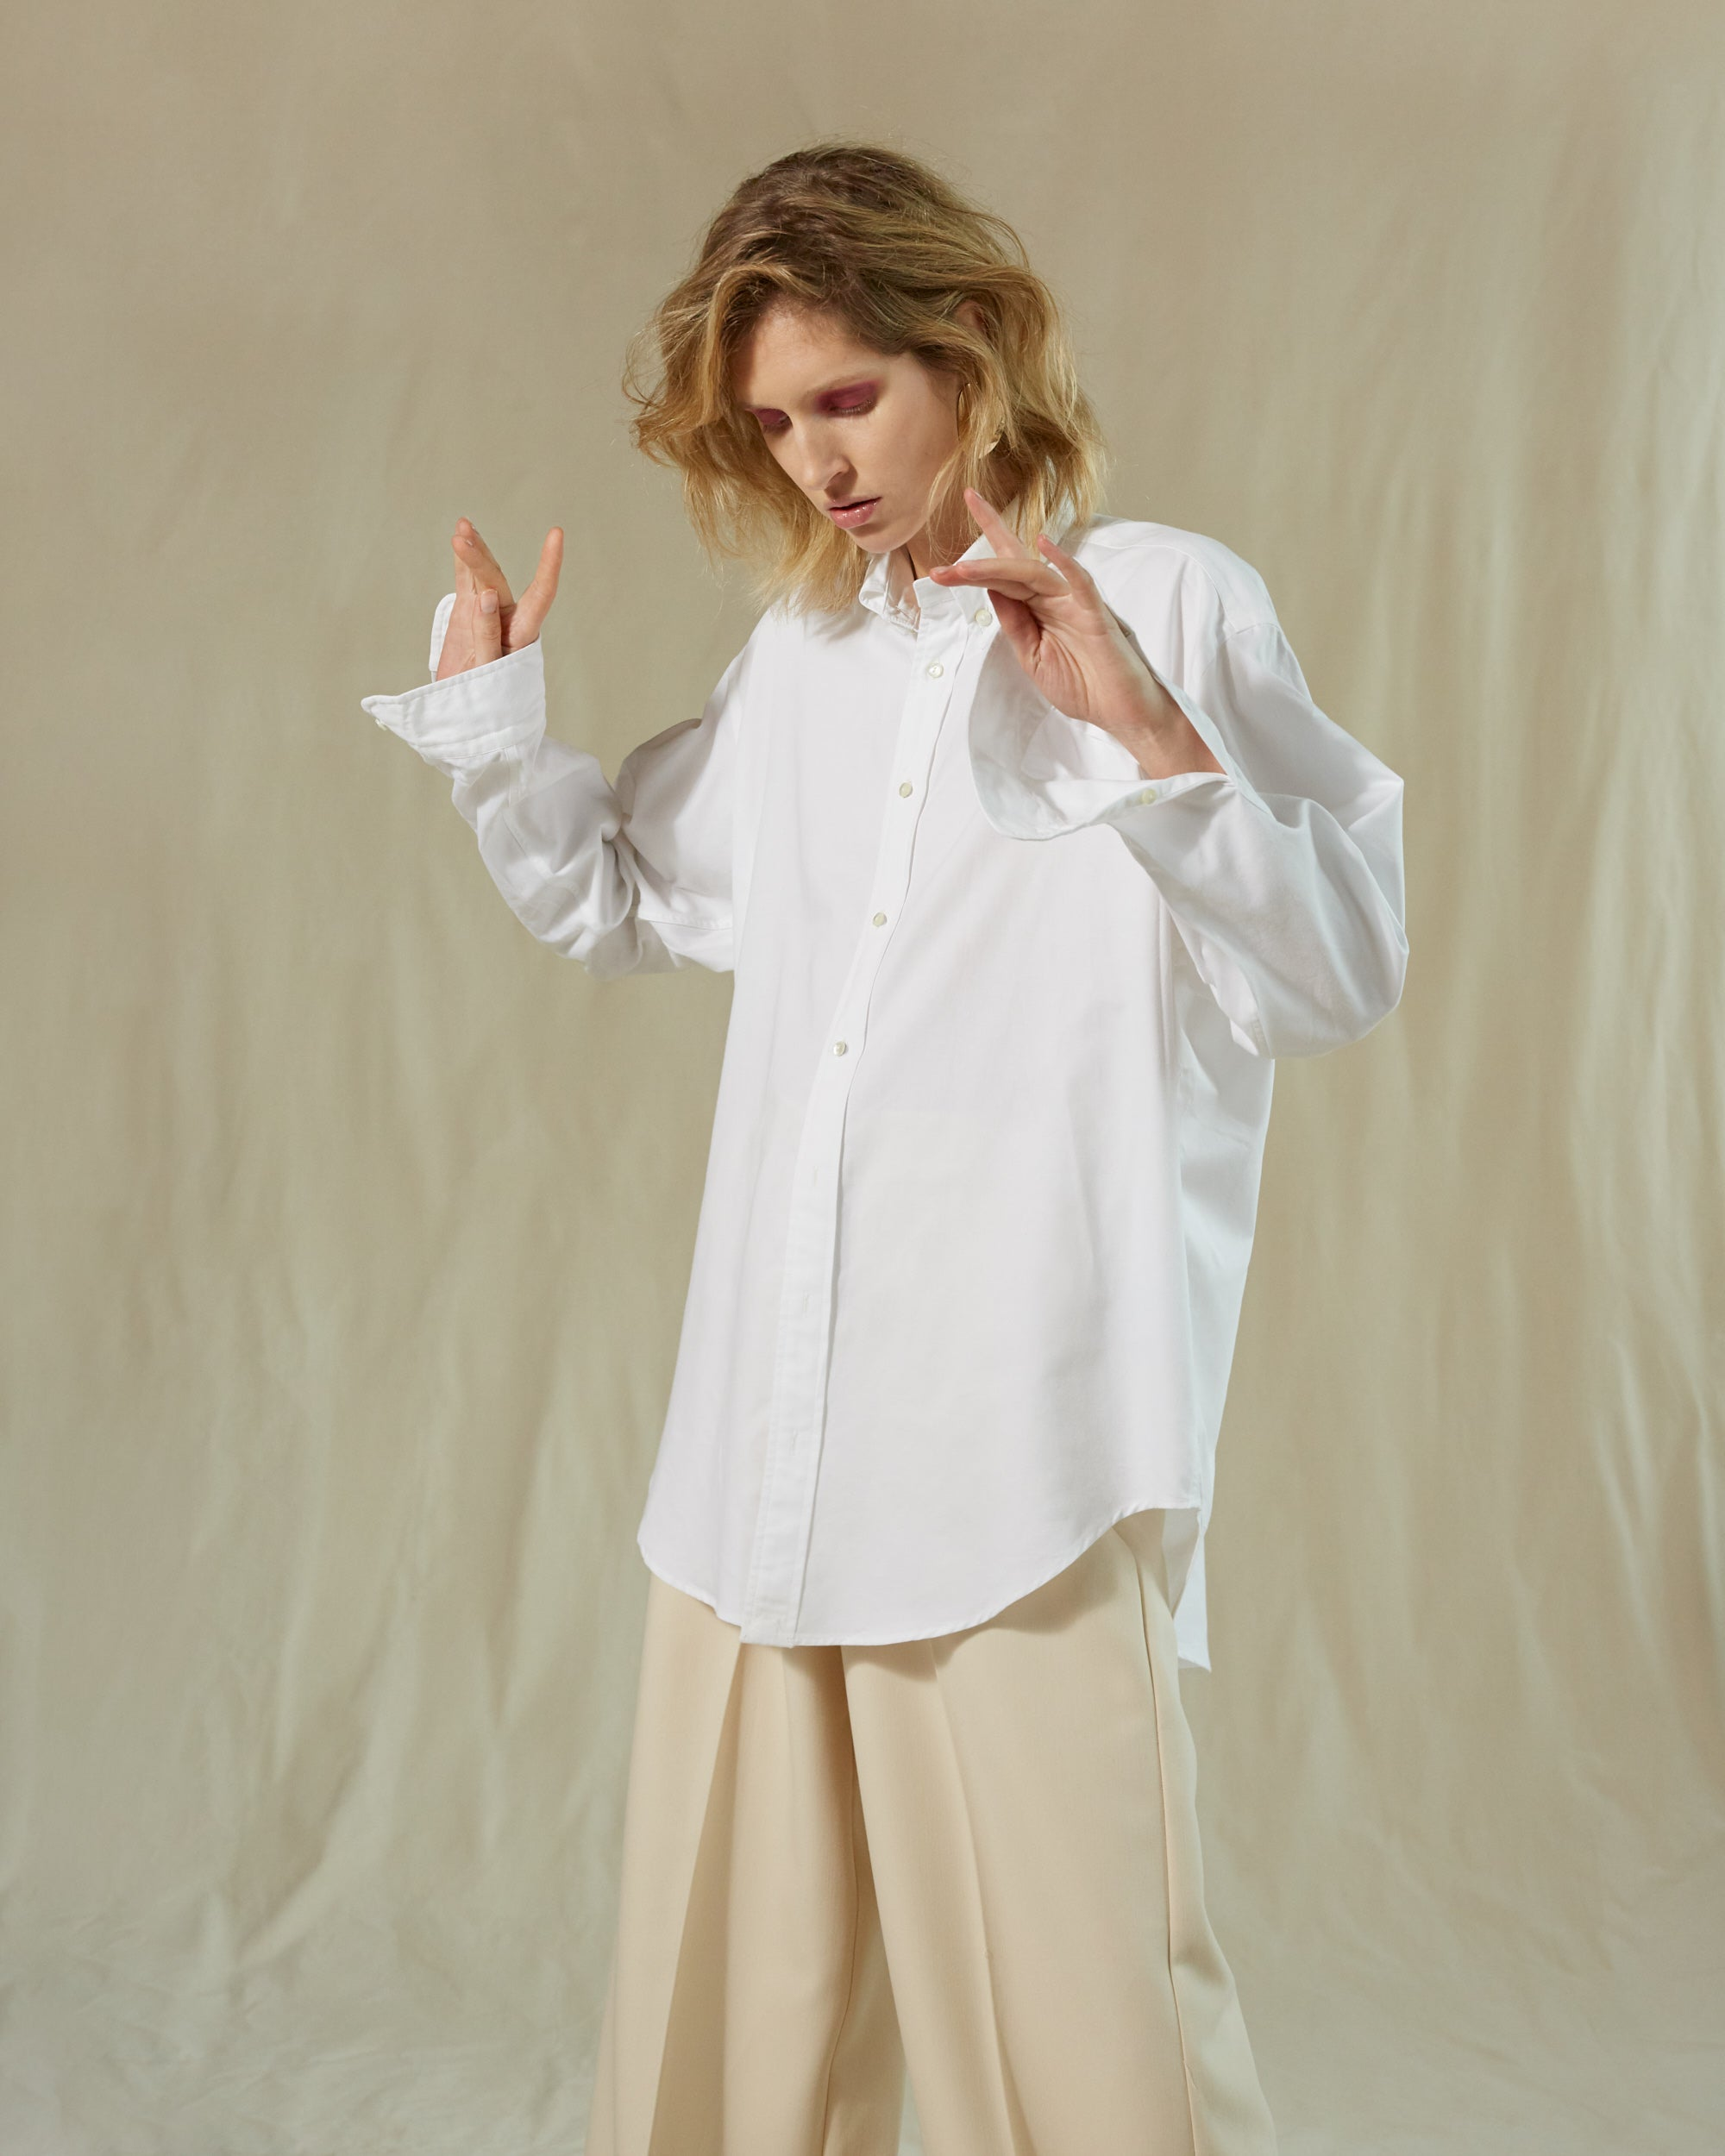 Conscious Collective shirt 100% upcycled hotel linen Archivist Studio white model dancing